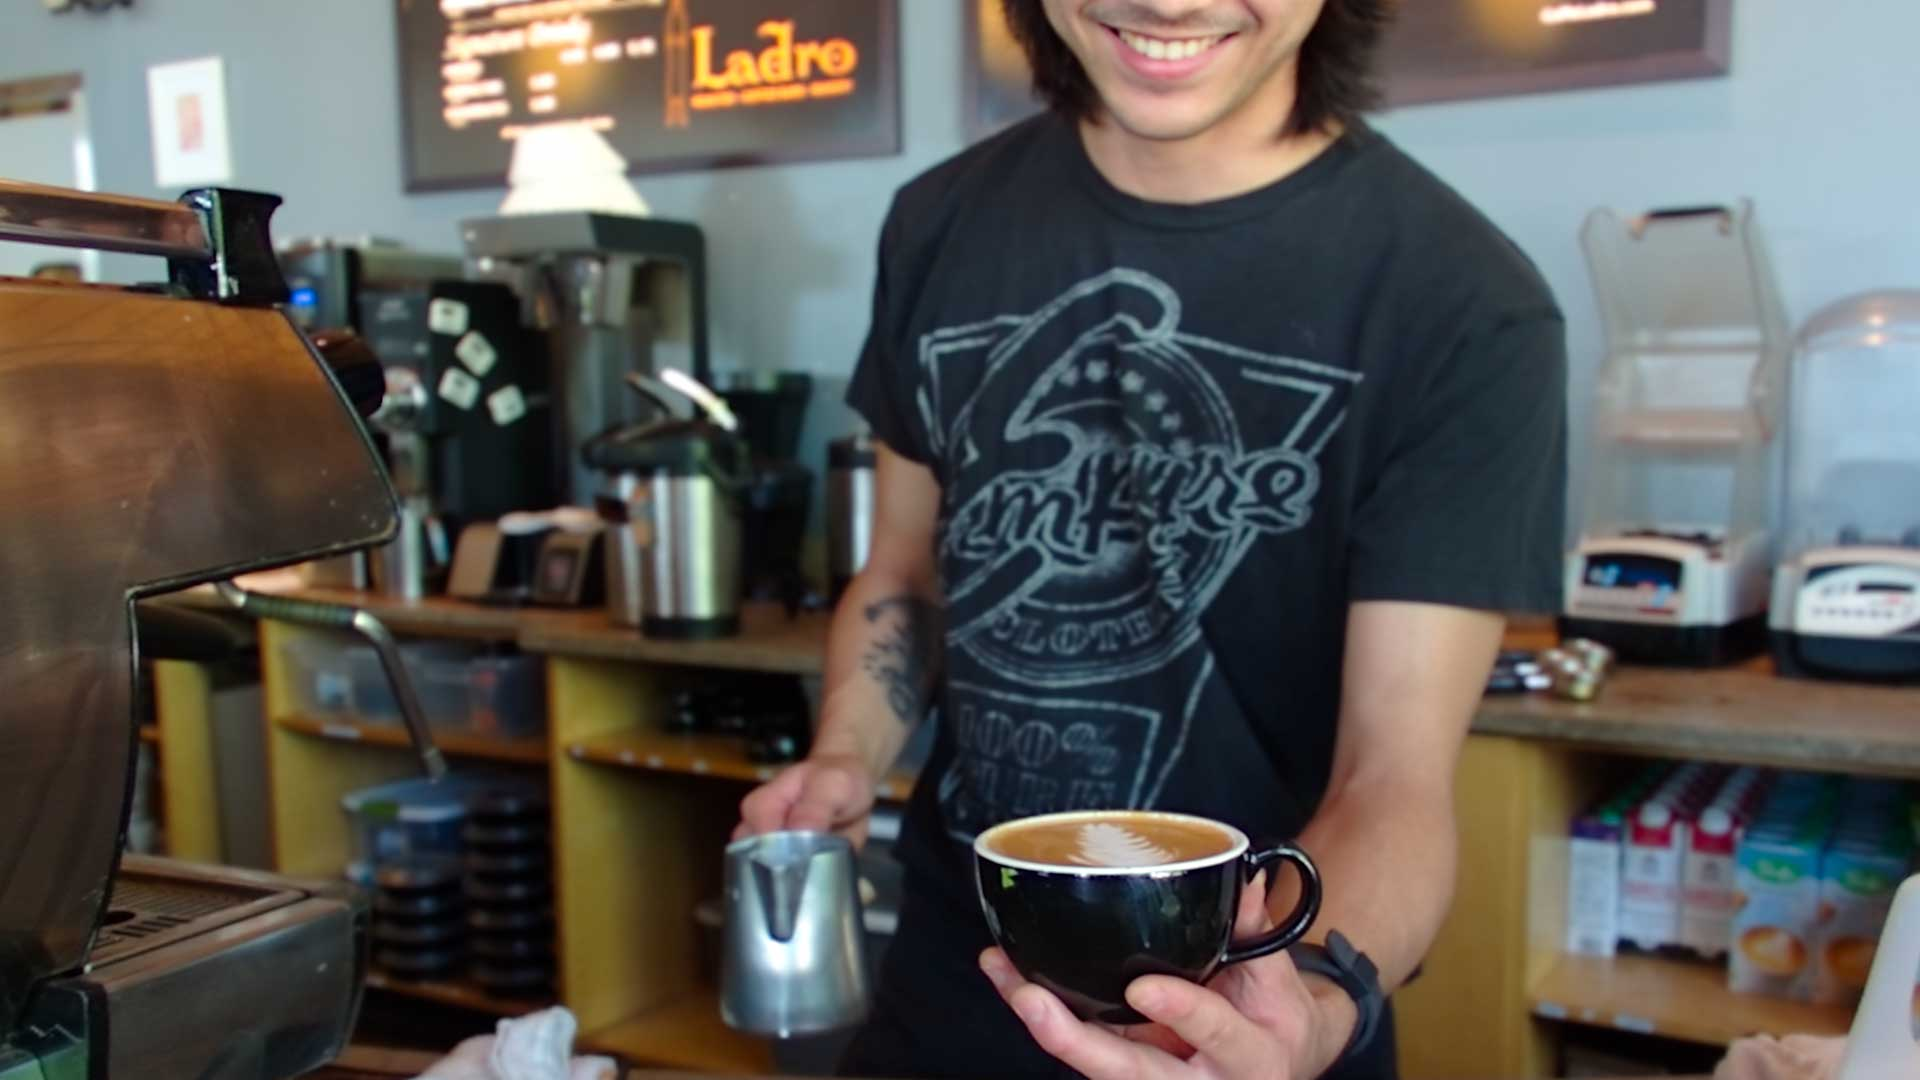 We're happy to fulfill Donations Request for your organization as evidenced by a smiling barista offering a coffee